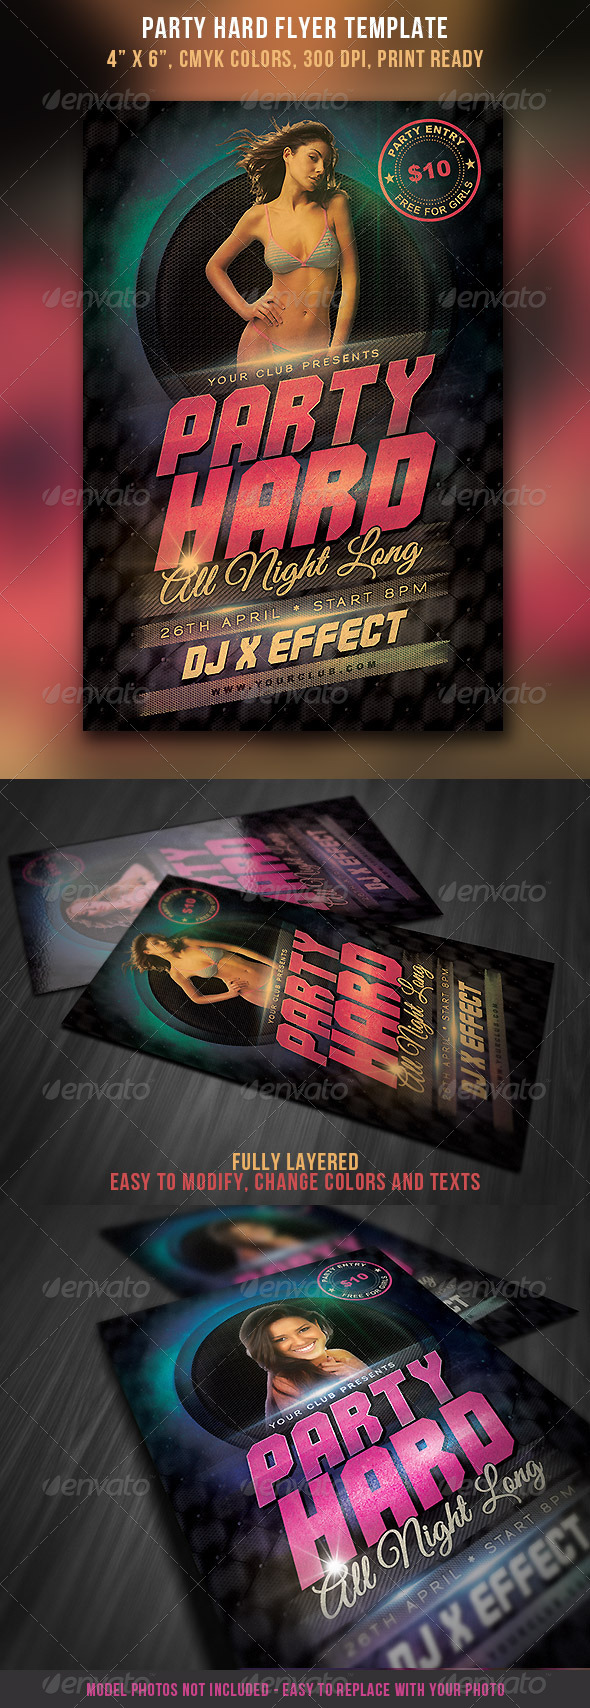 Party Hard Flyer Template - Clubs & Parties Events